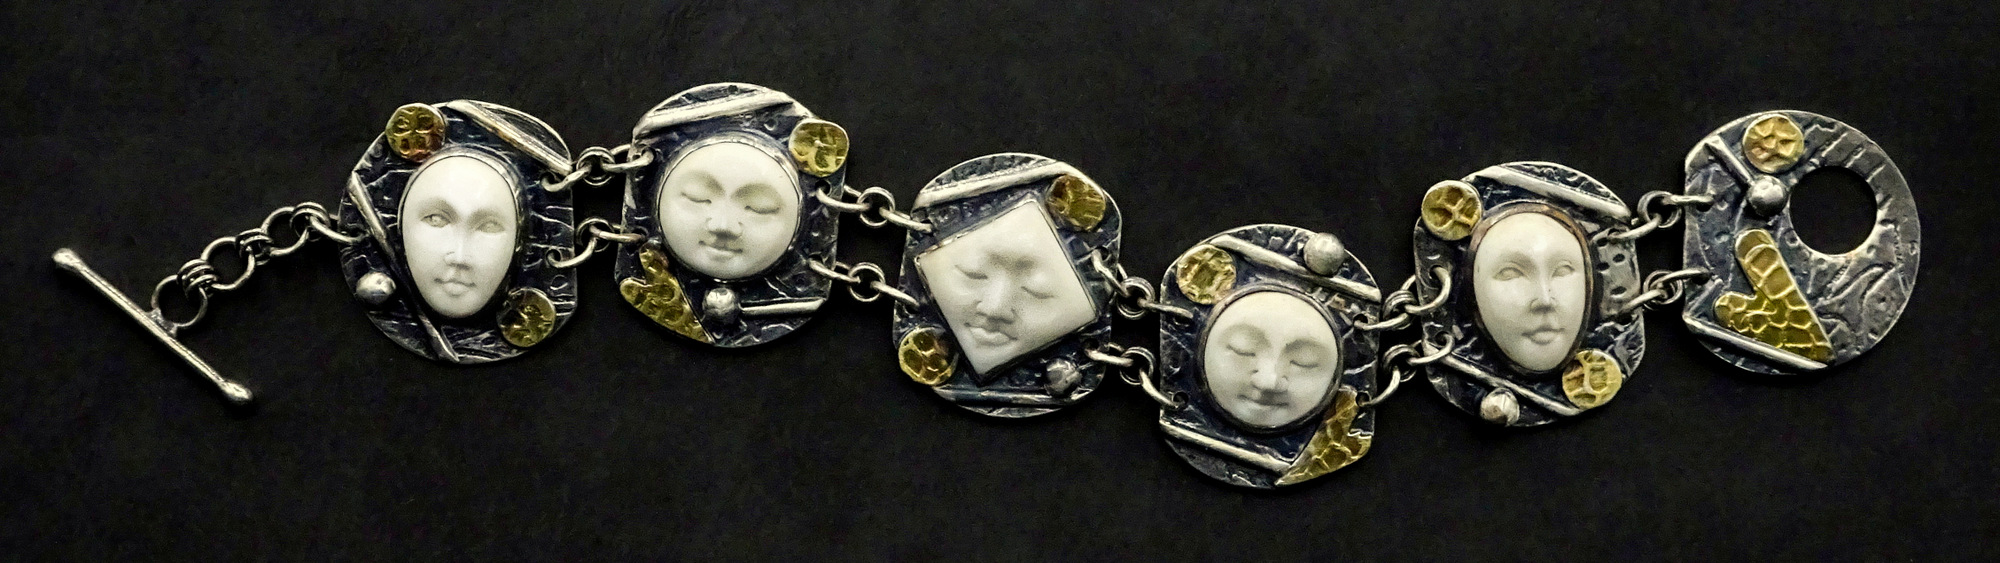 1-Sylvia McCollum, Handcrafted Faces of Courage, Fine Art Silver Jewelry-001.JPG